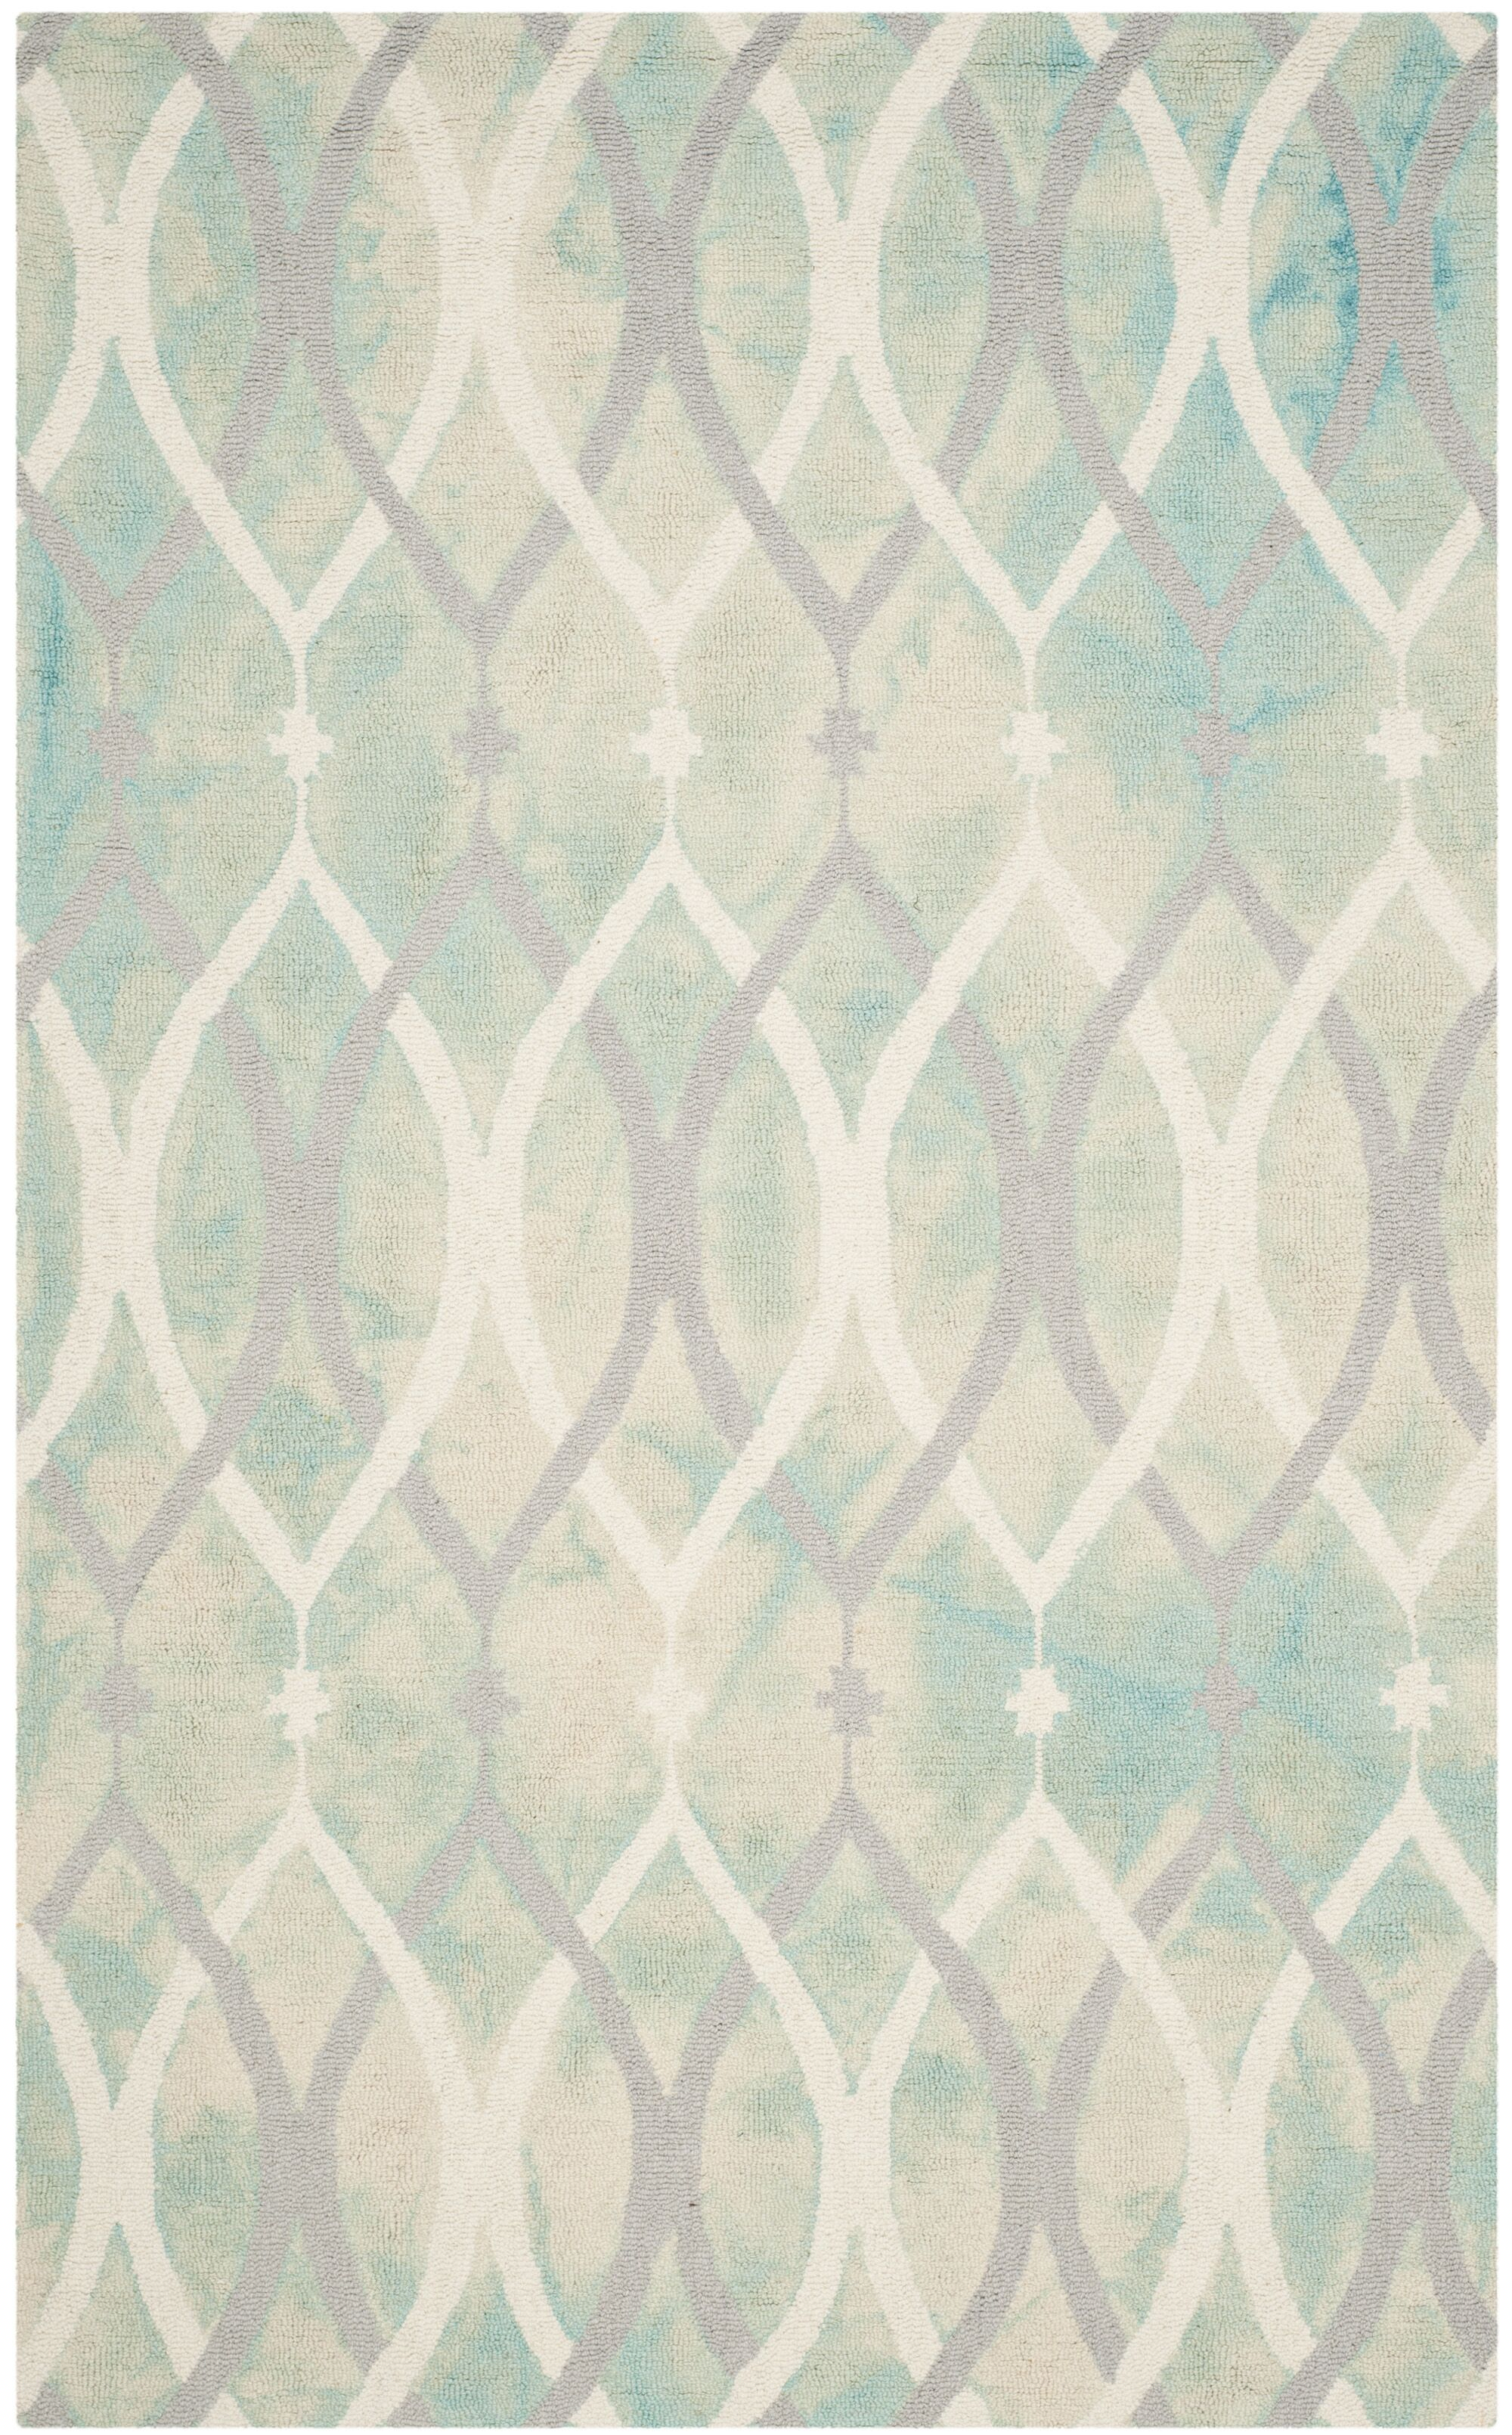 Clements Hand-Tufted Green/Ivory/Gray Area Rug Rug Size: Rectangle 5' x 8'